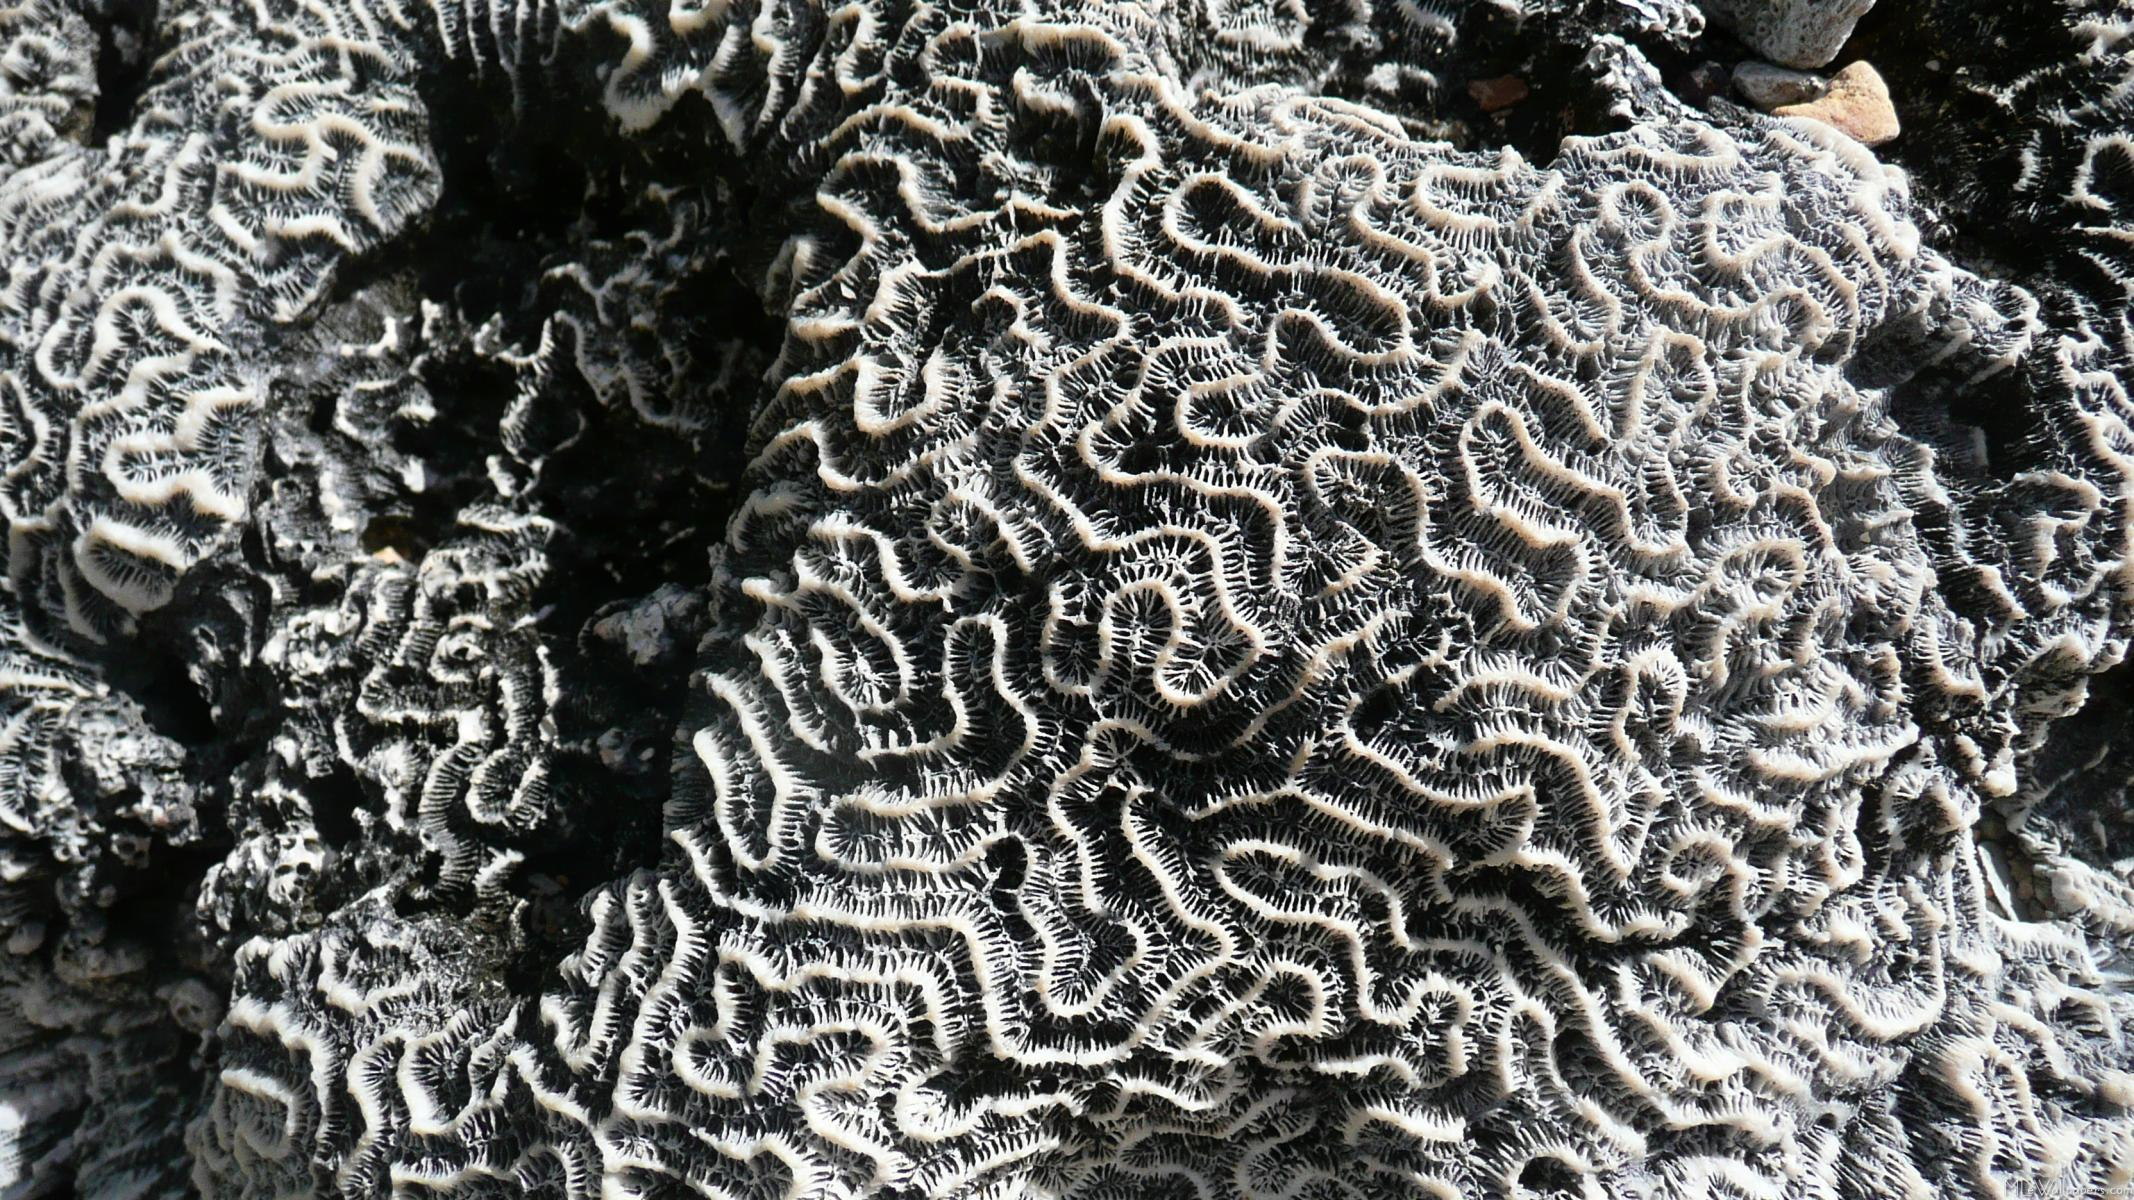 Black and White Coral I 725 Wallpaper patterns black on white